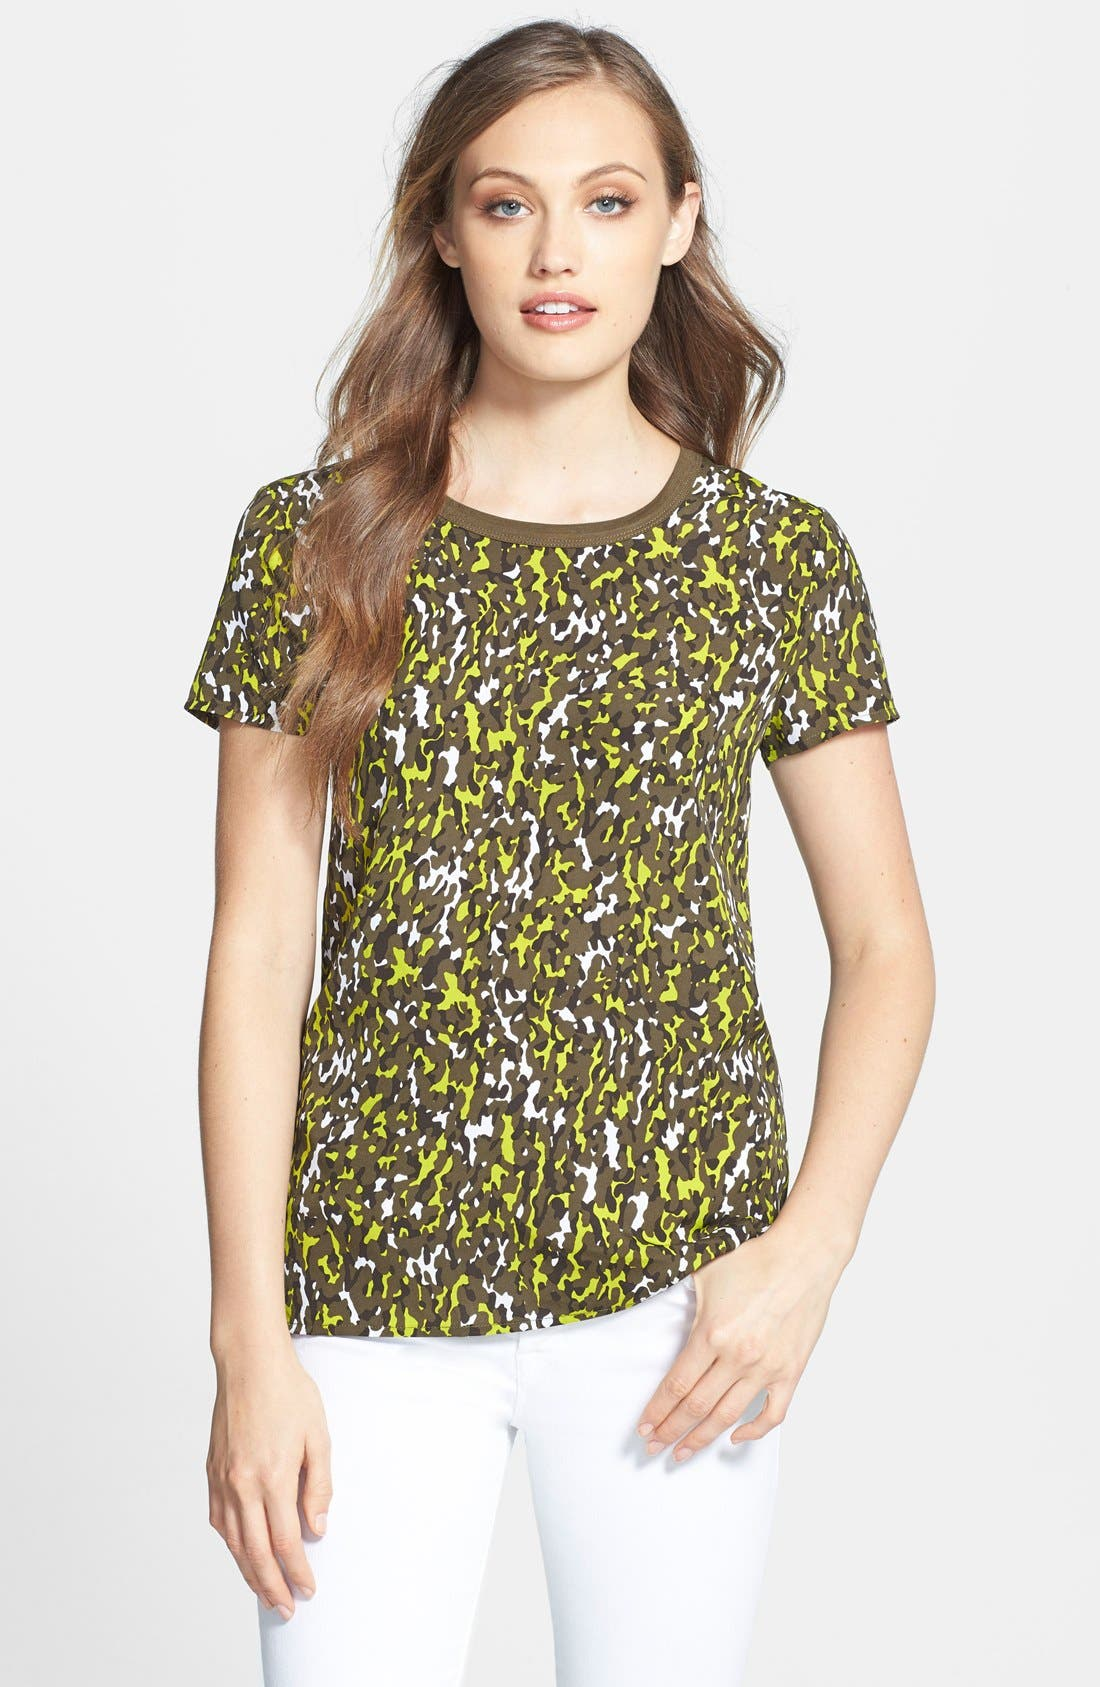 Alternate Image 1 Selected - MICHAEL Michael Kors Camo Print Mixed Media Tee (Petite)